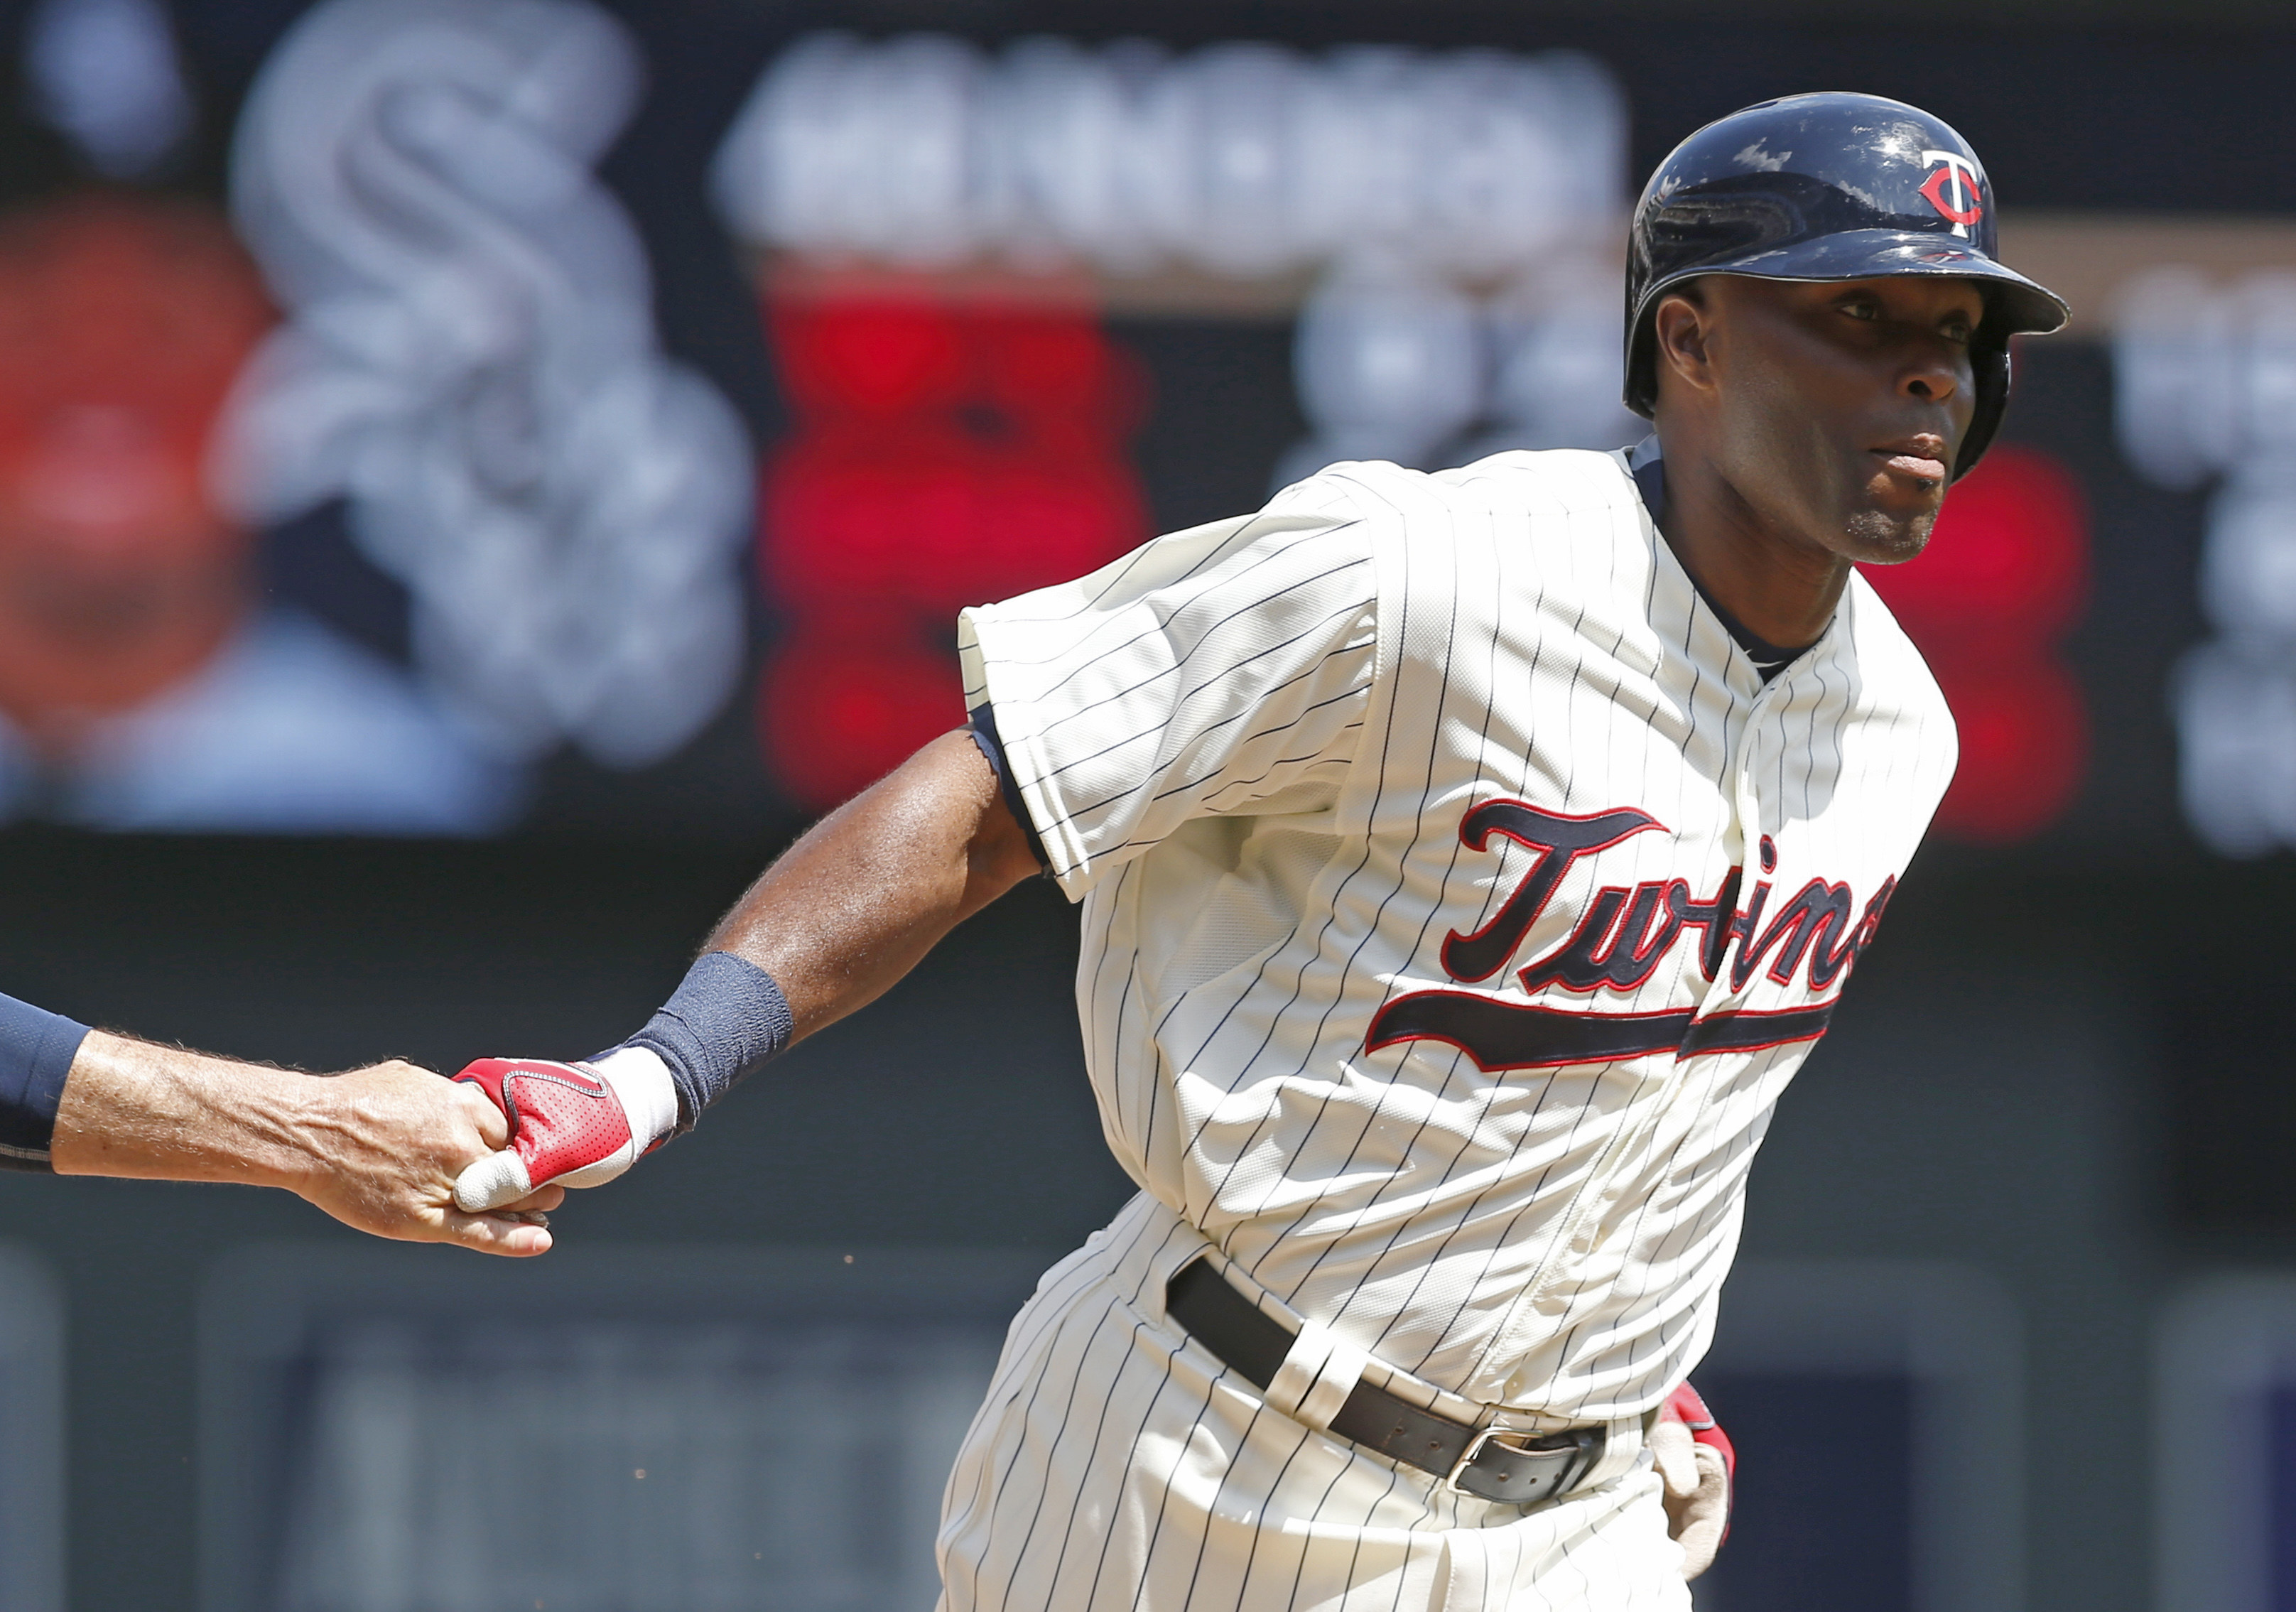 Minnesota Twins' Torii Hunter rounds third on after hitting a two-run home run off Chicago White Sox pitcher Hector Noesi  in the third inning of a baseball game, Saturday, May 2, 2015, in Minneapolis. (AP Photo/Jim Mone)